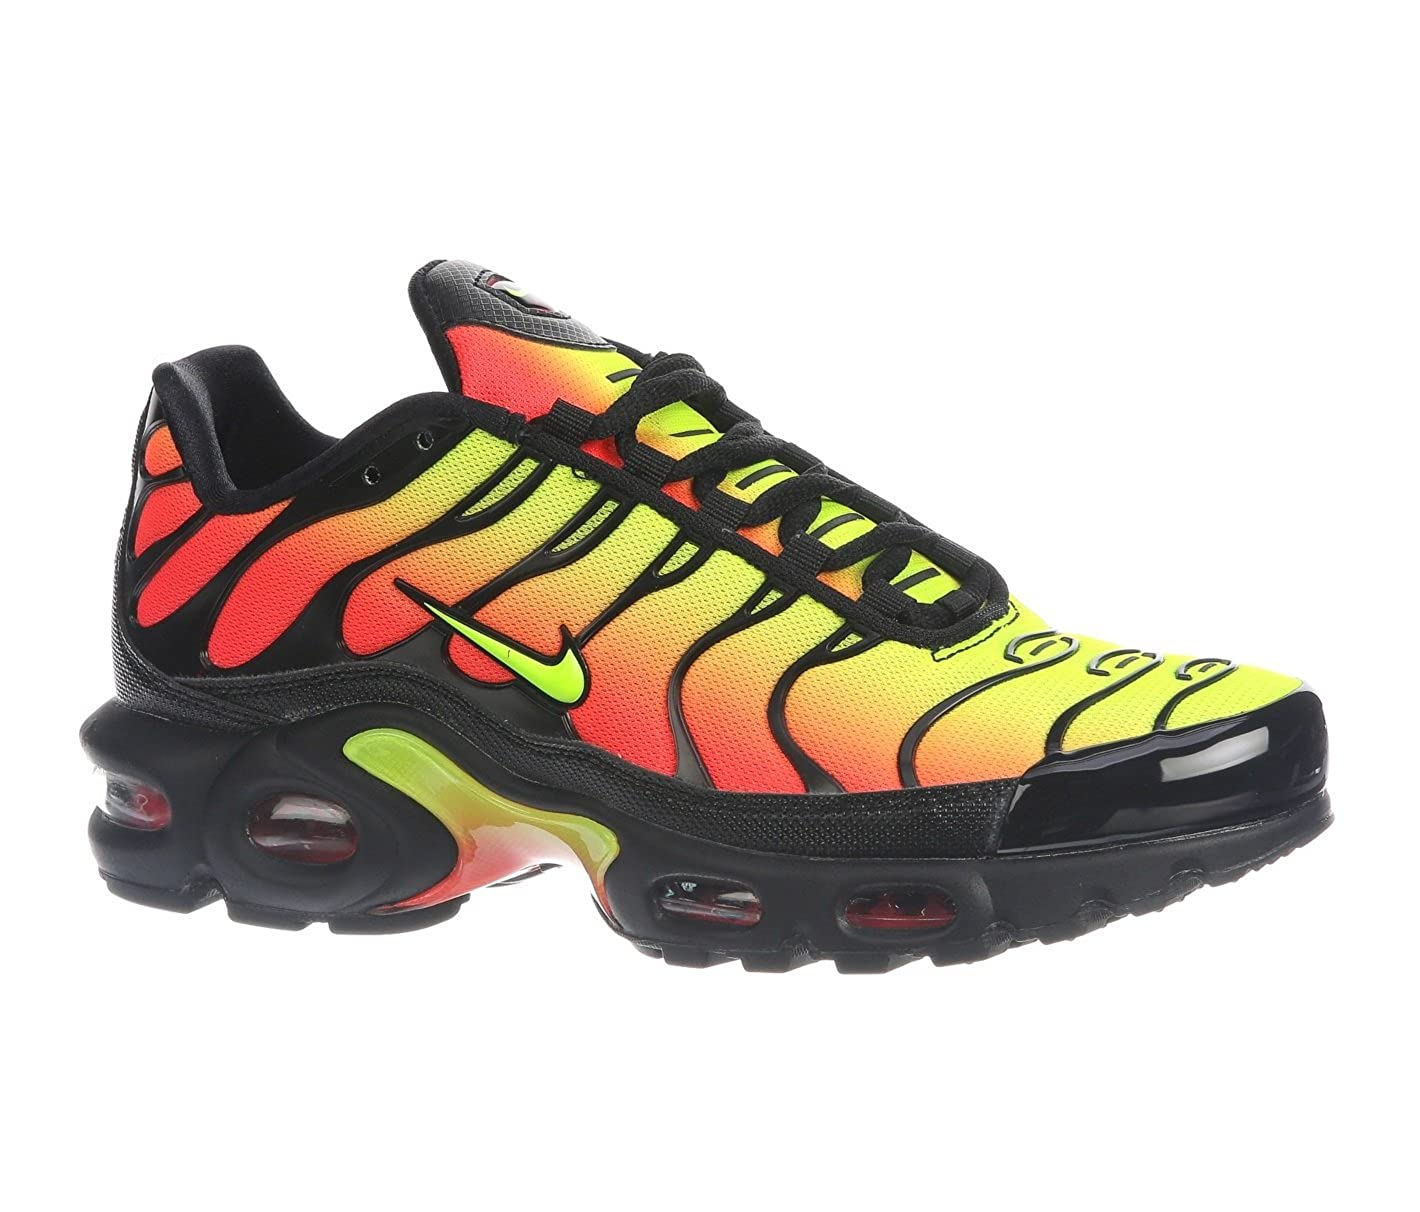 5844a01510 Amazon.com | Nike Womens Air Max Plus Tn Se Running Trainers Aq9979  Sneakers Shoes | Road Running